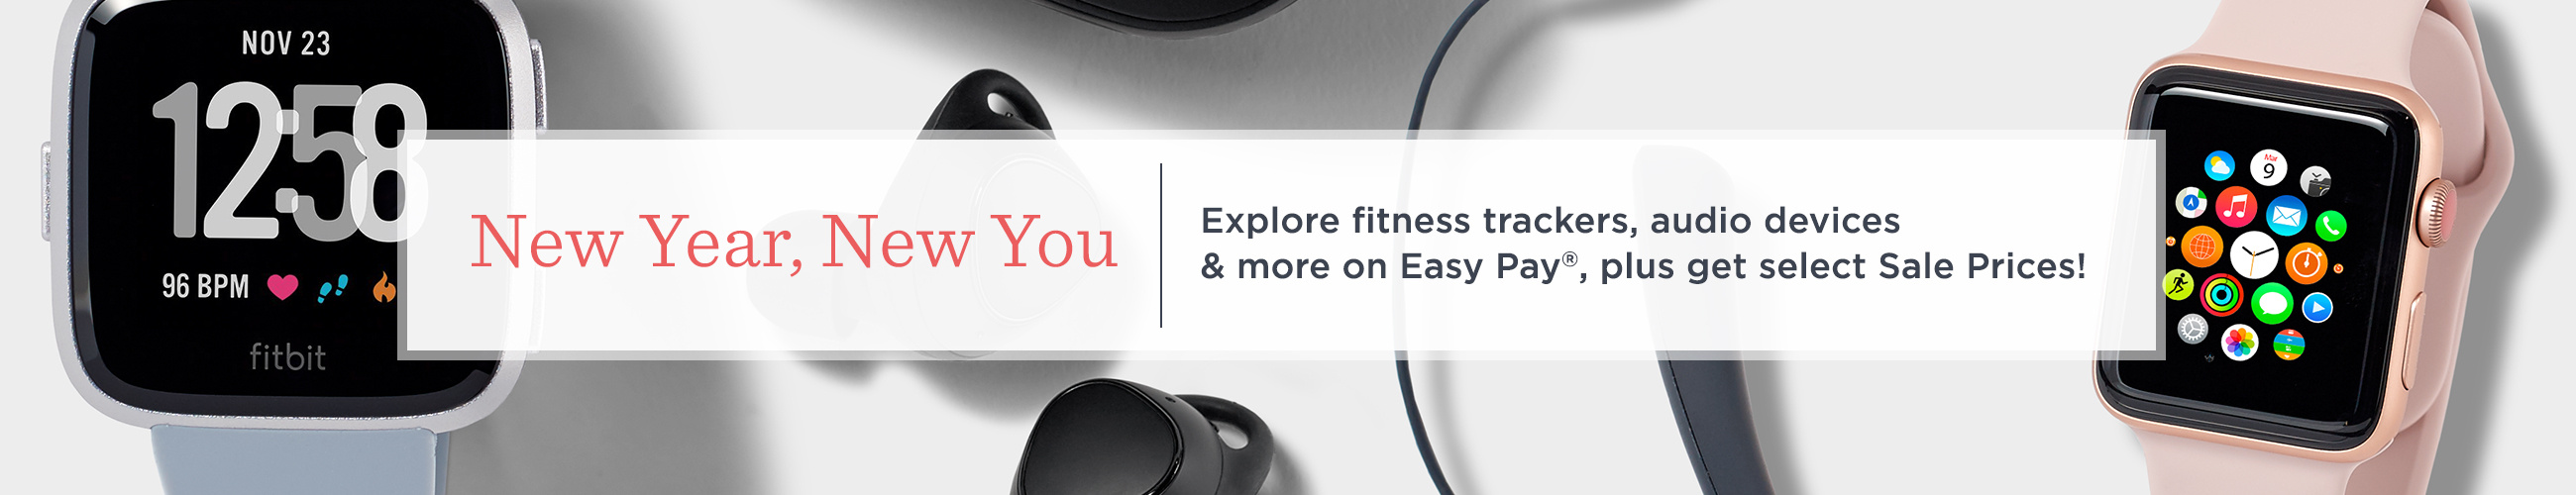 New Year, New You  Explore fitness trackers, audio devices & more on Easy Pay®, plus get select Sale Prices!